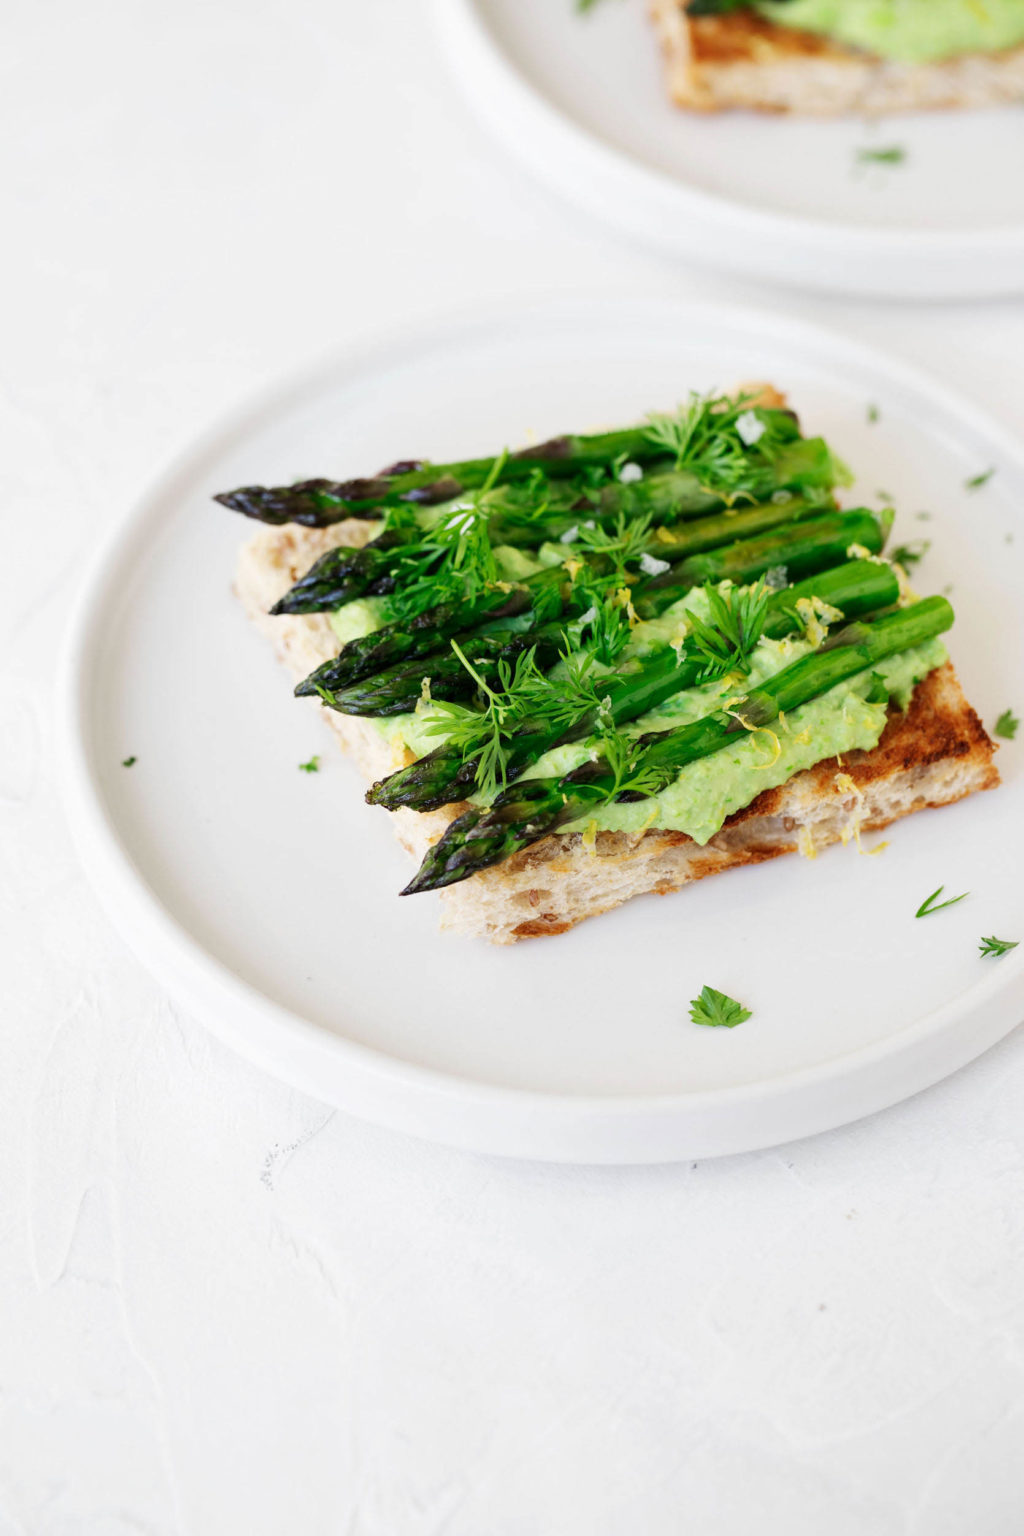 An angled photograph of a tartine made with green pea hummus and grilled asparagus spears. It rests on a white plate and white surface.